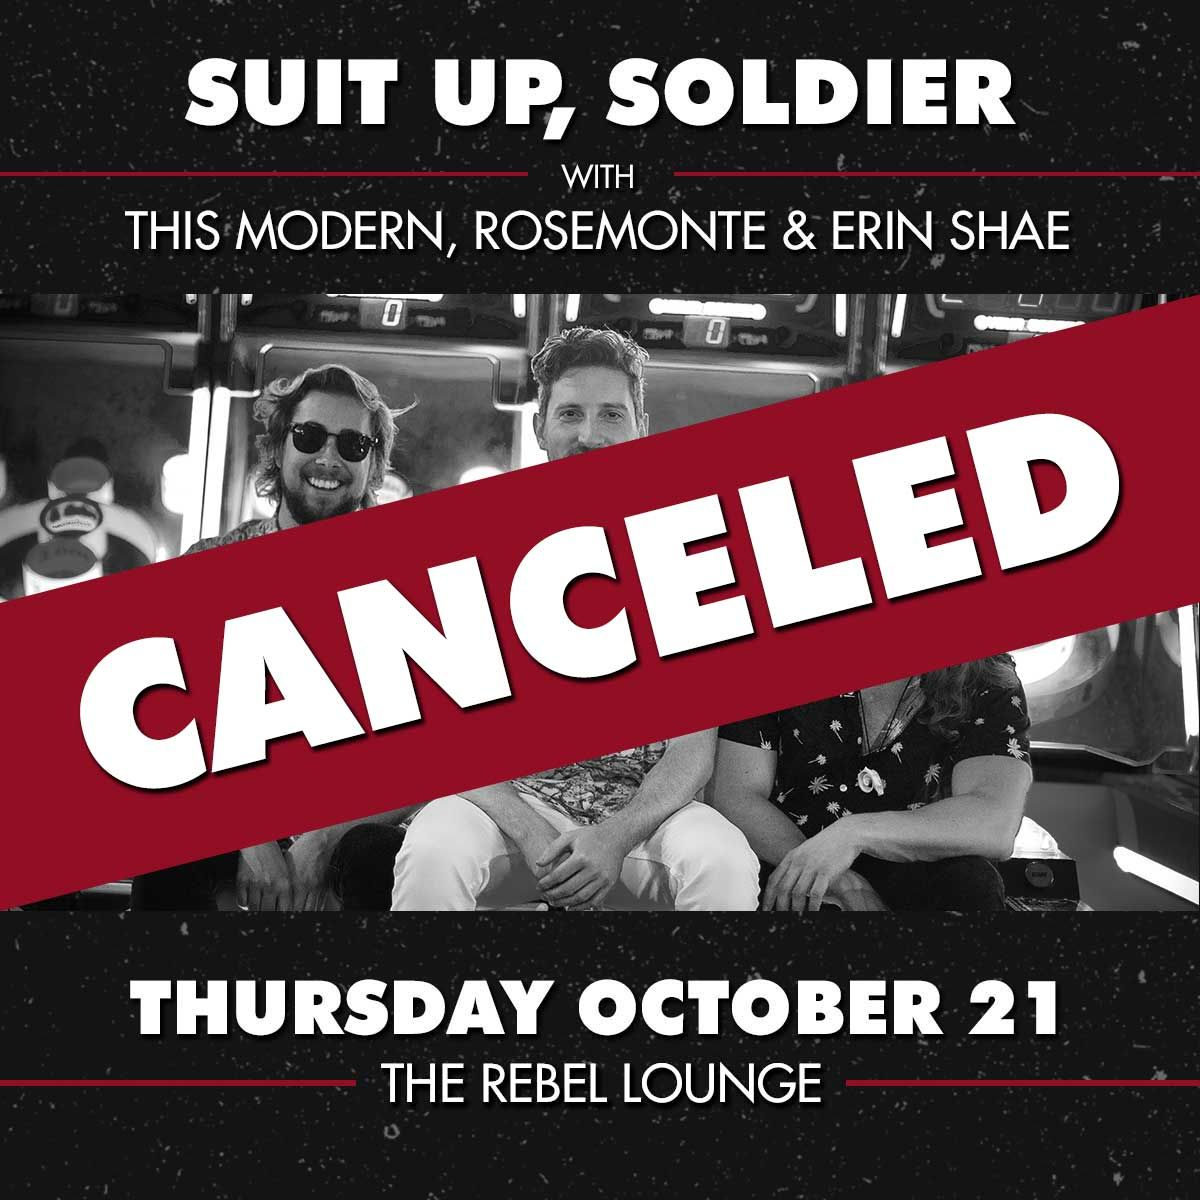 SUIT UP, SOLDIER: CANCELLED: